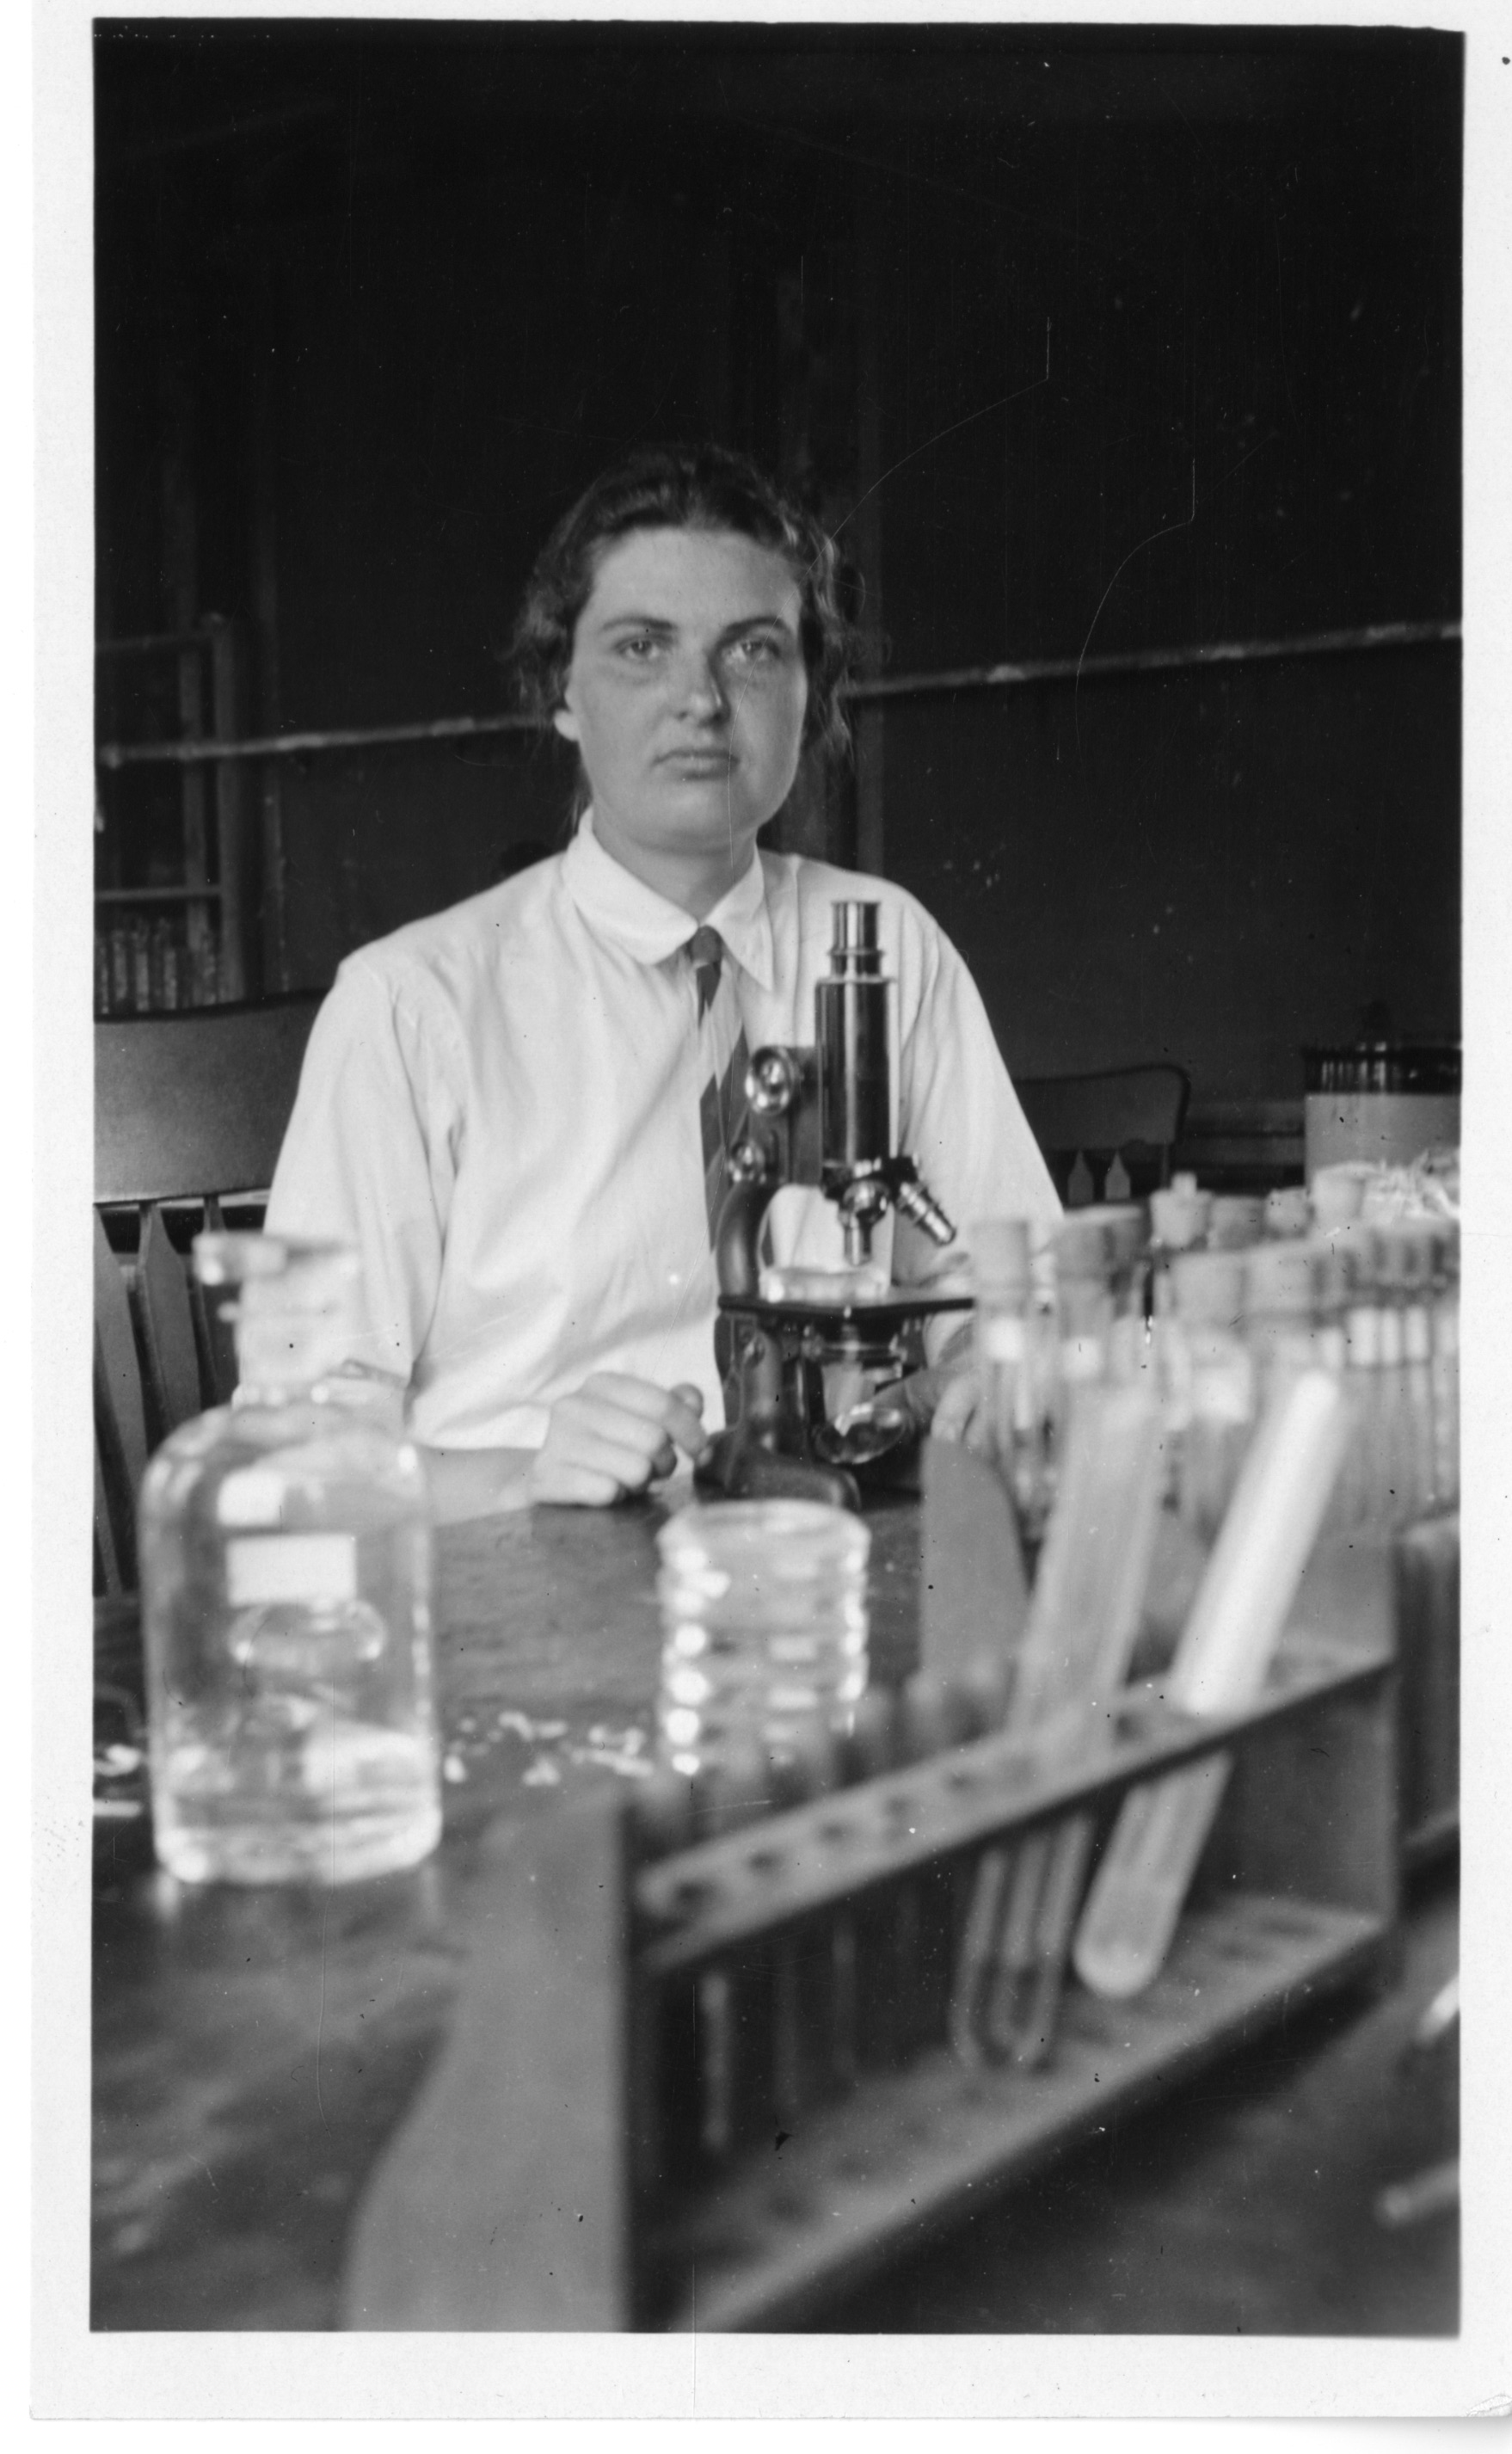 A person sitting at a desk looks directly into the camera. A microscope, test tubes, beakers, and ot